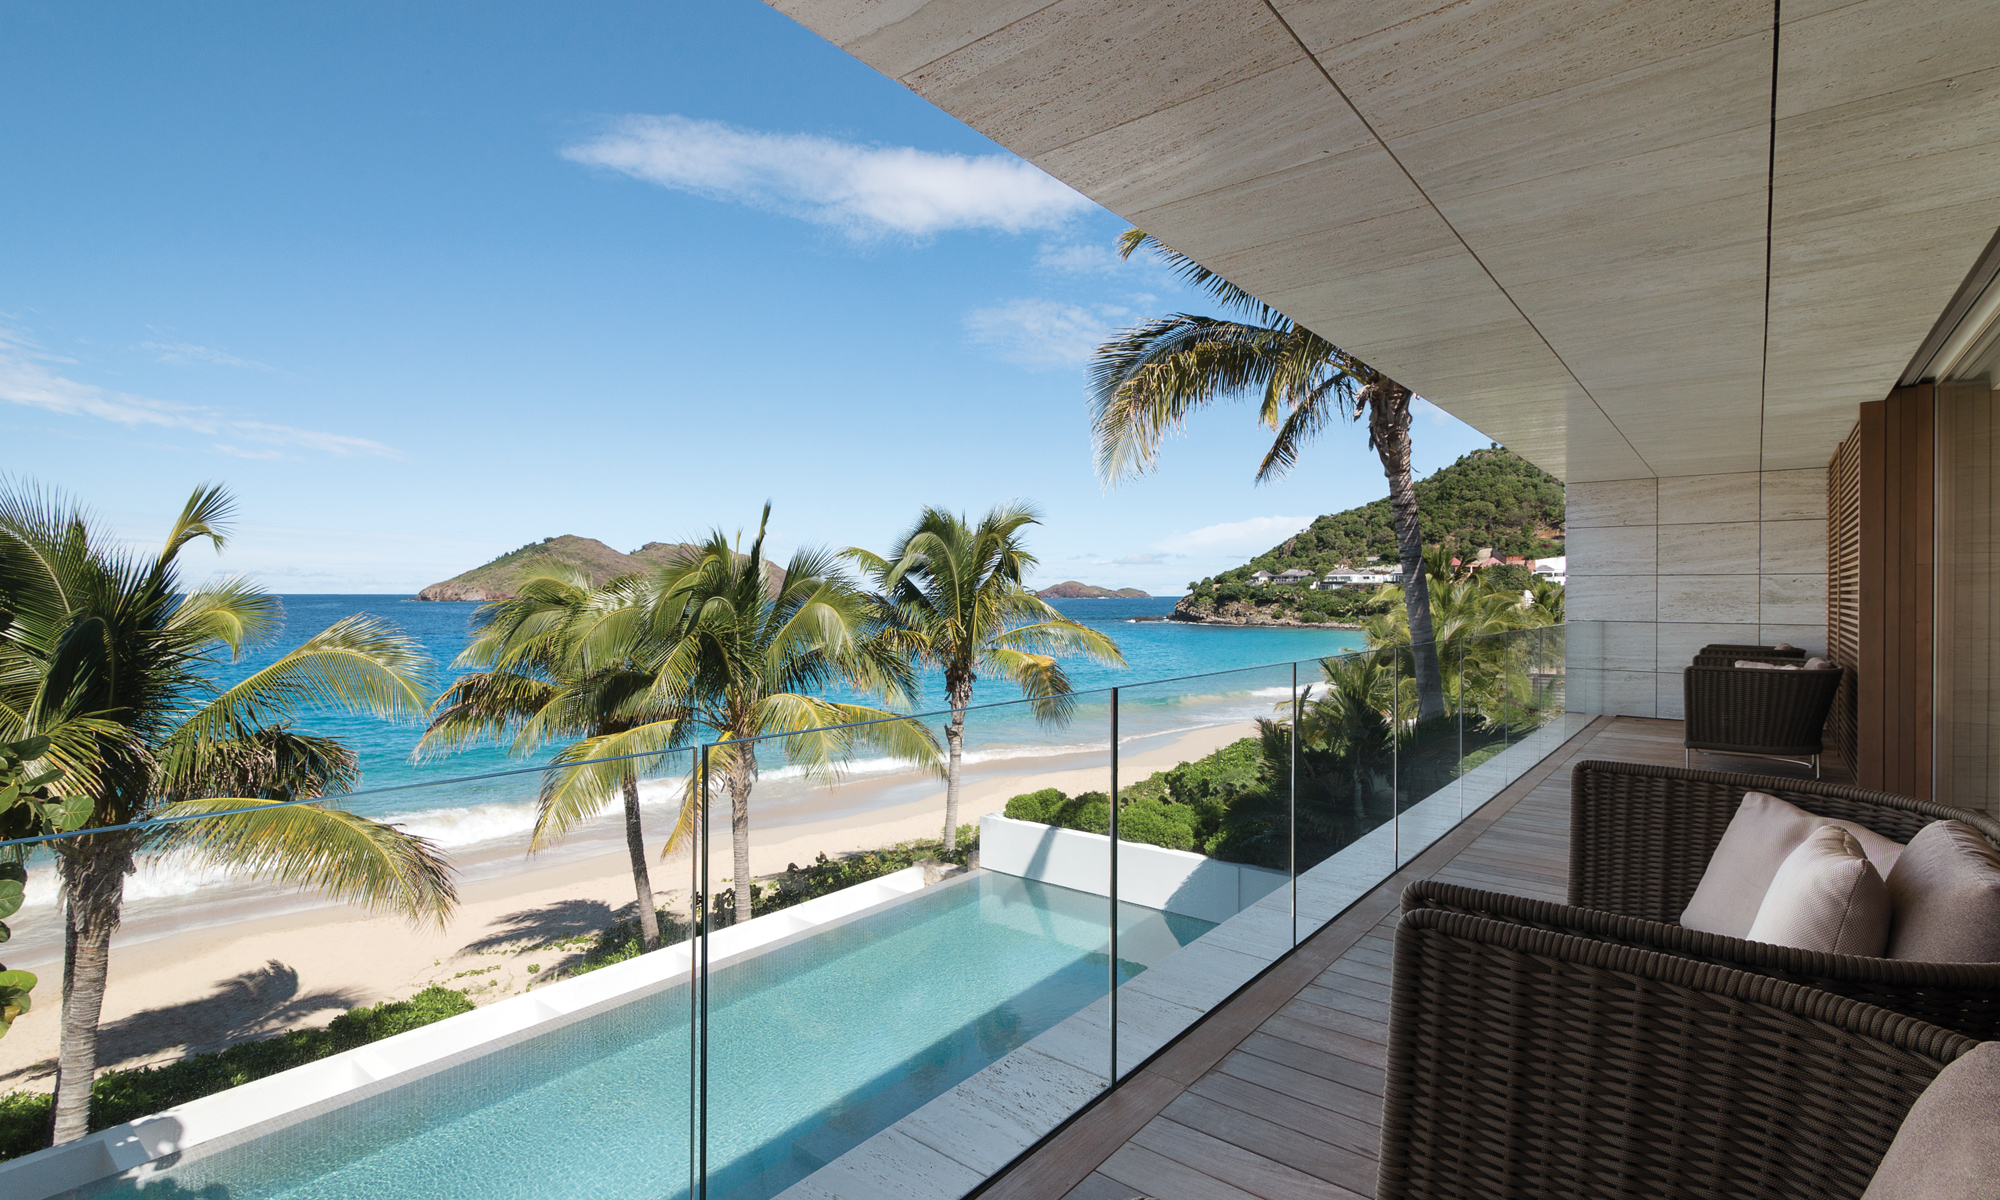 The master suite has its own private terrace overlooking Flamands beach.